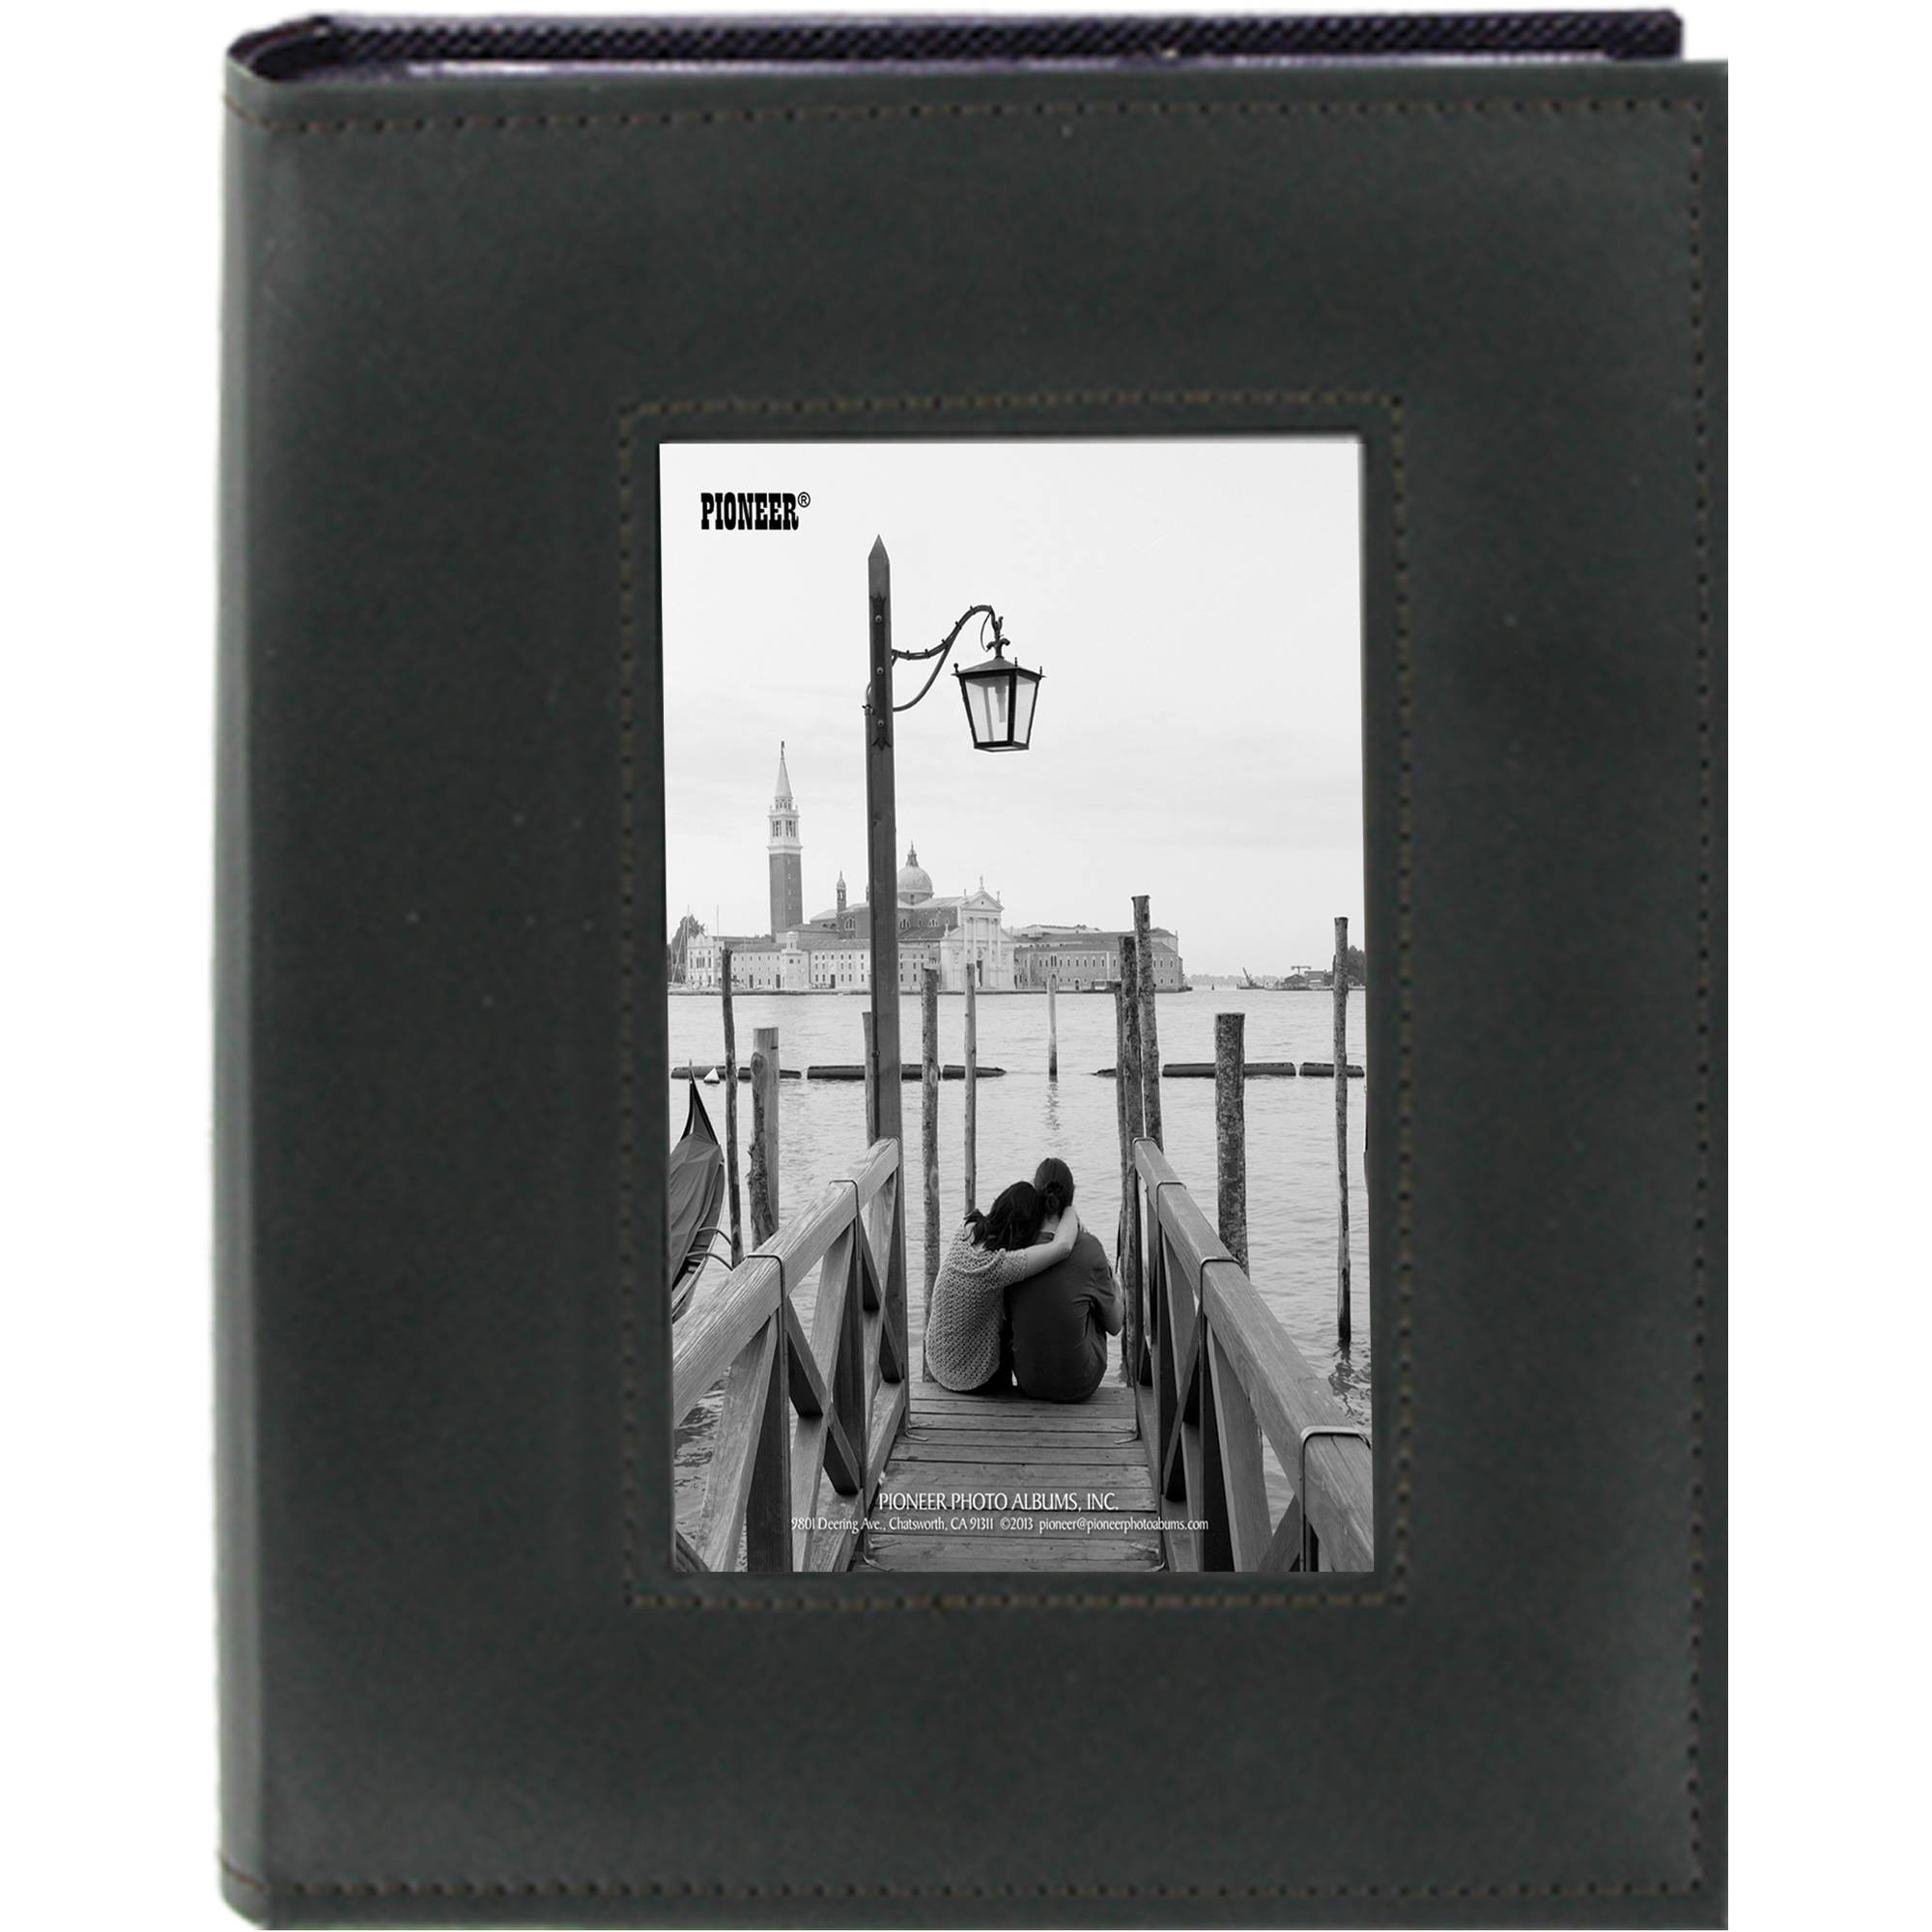 Phto Albums: Pioneer Photo Albums Sewn Photo Album With Frame FRM246/BK B&H